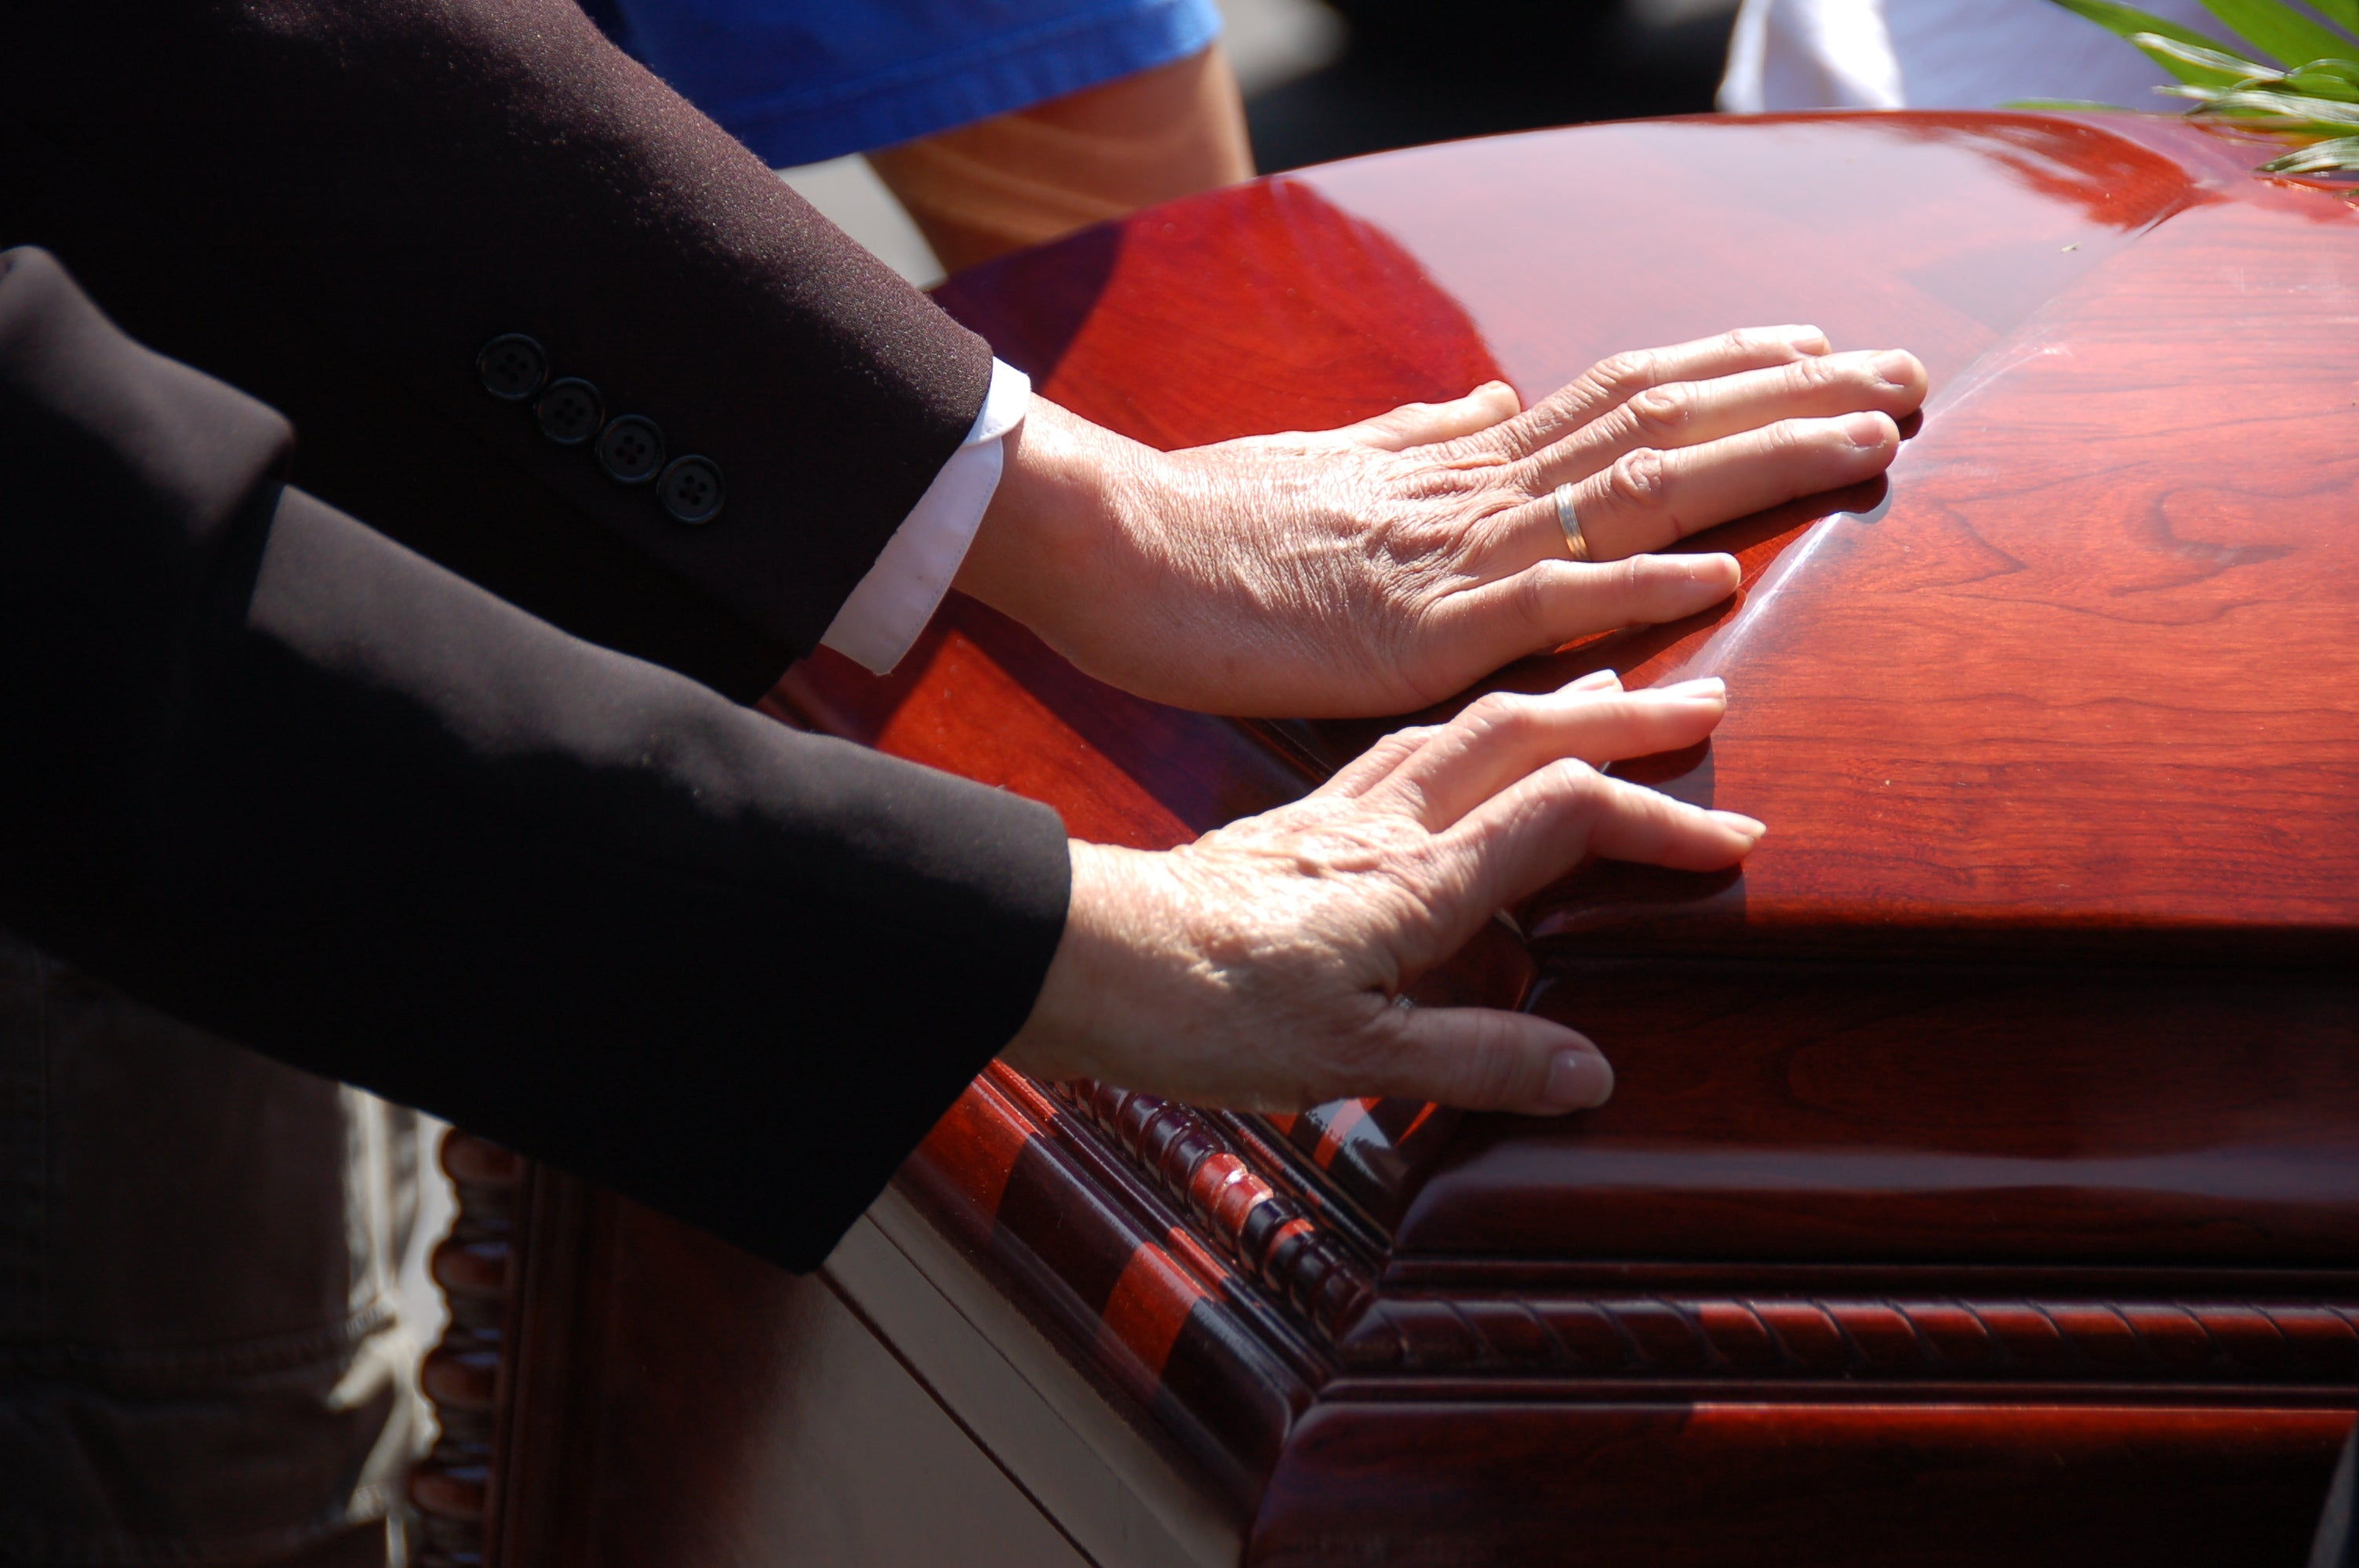 Two hands on a corner of a shiny casket at a funeral